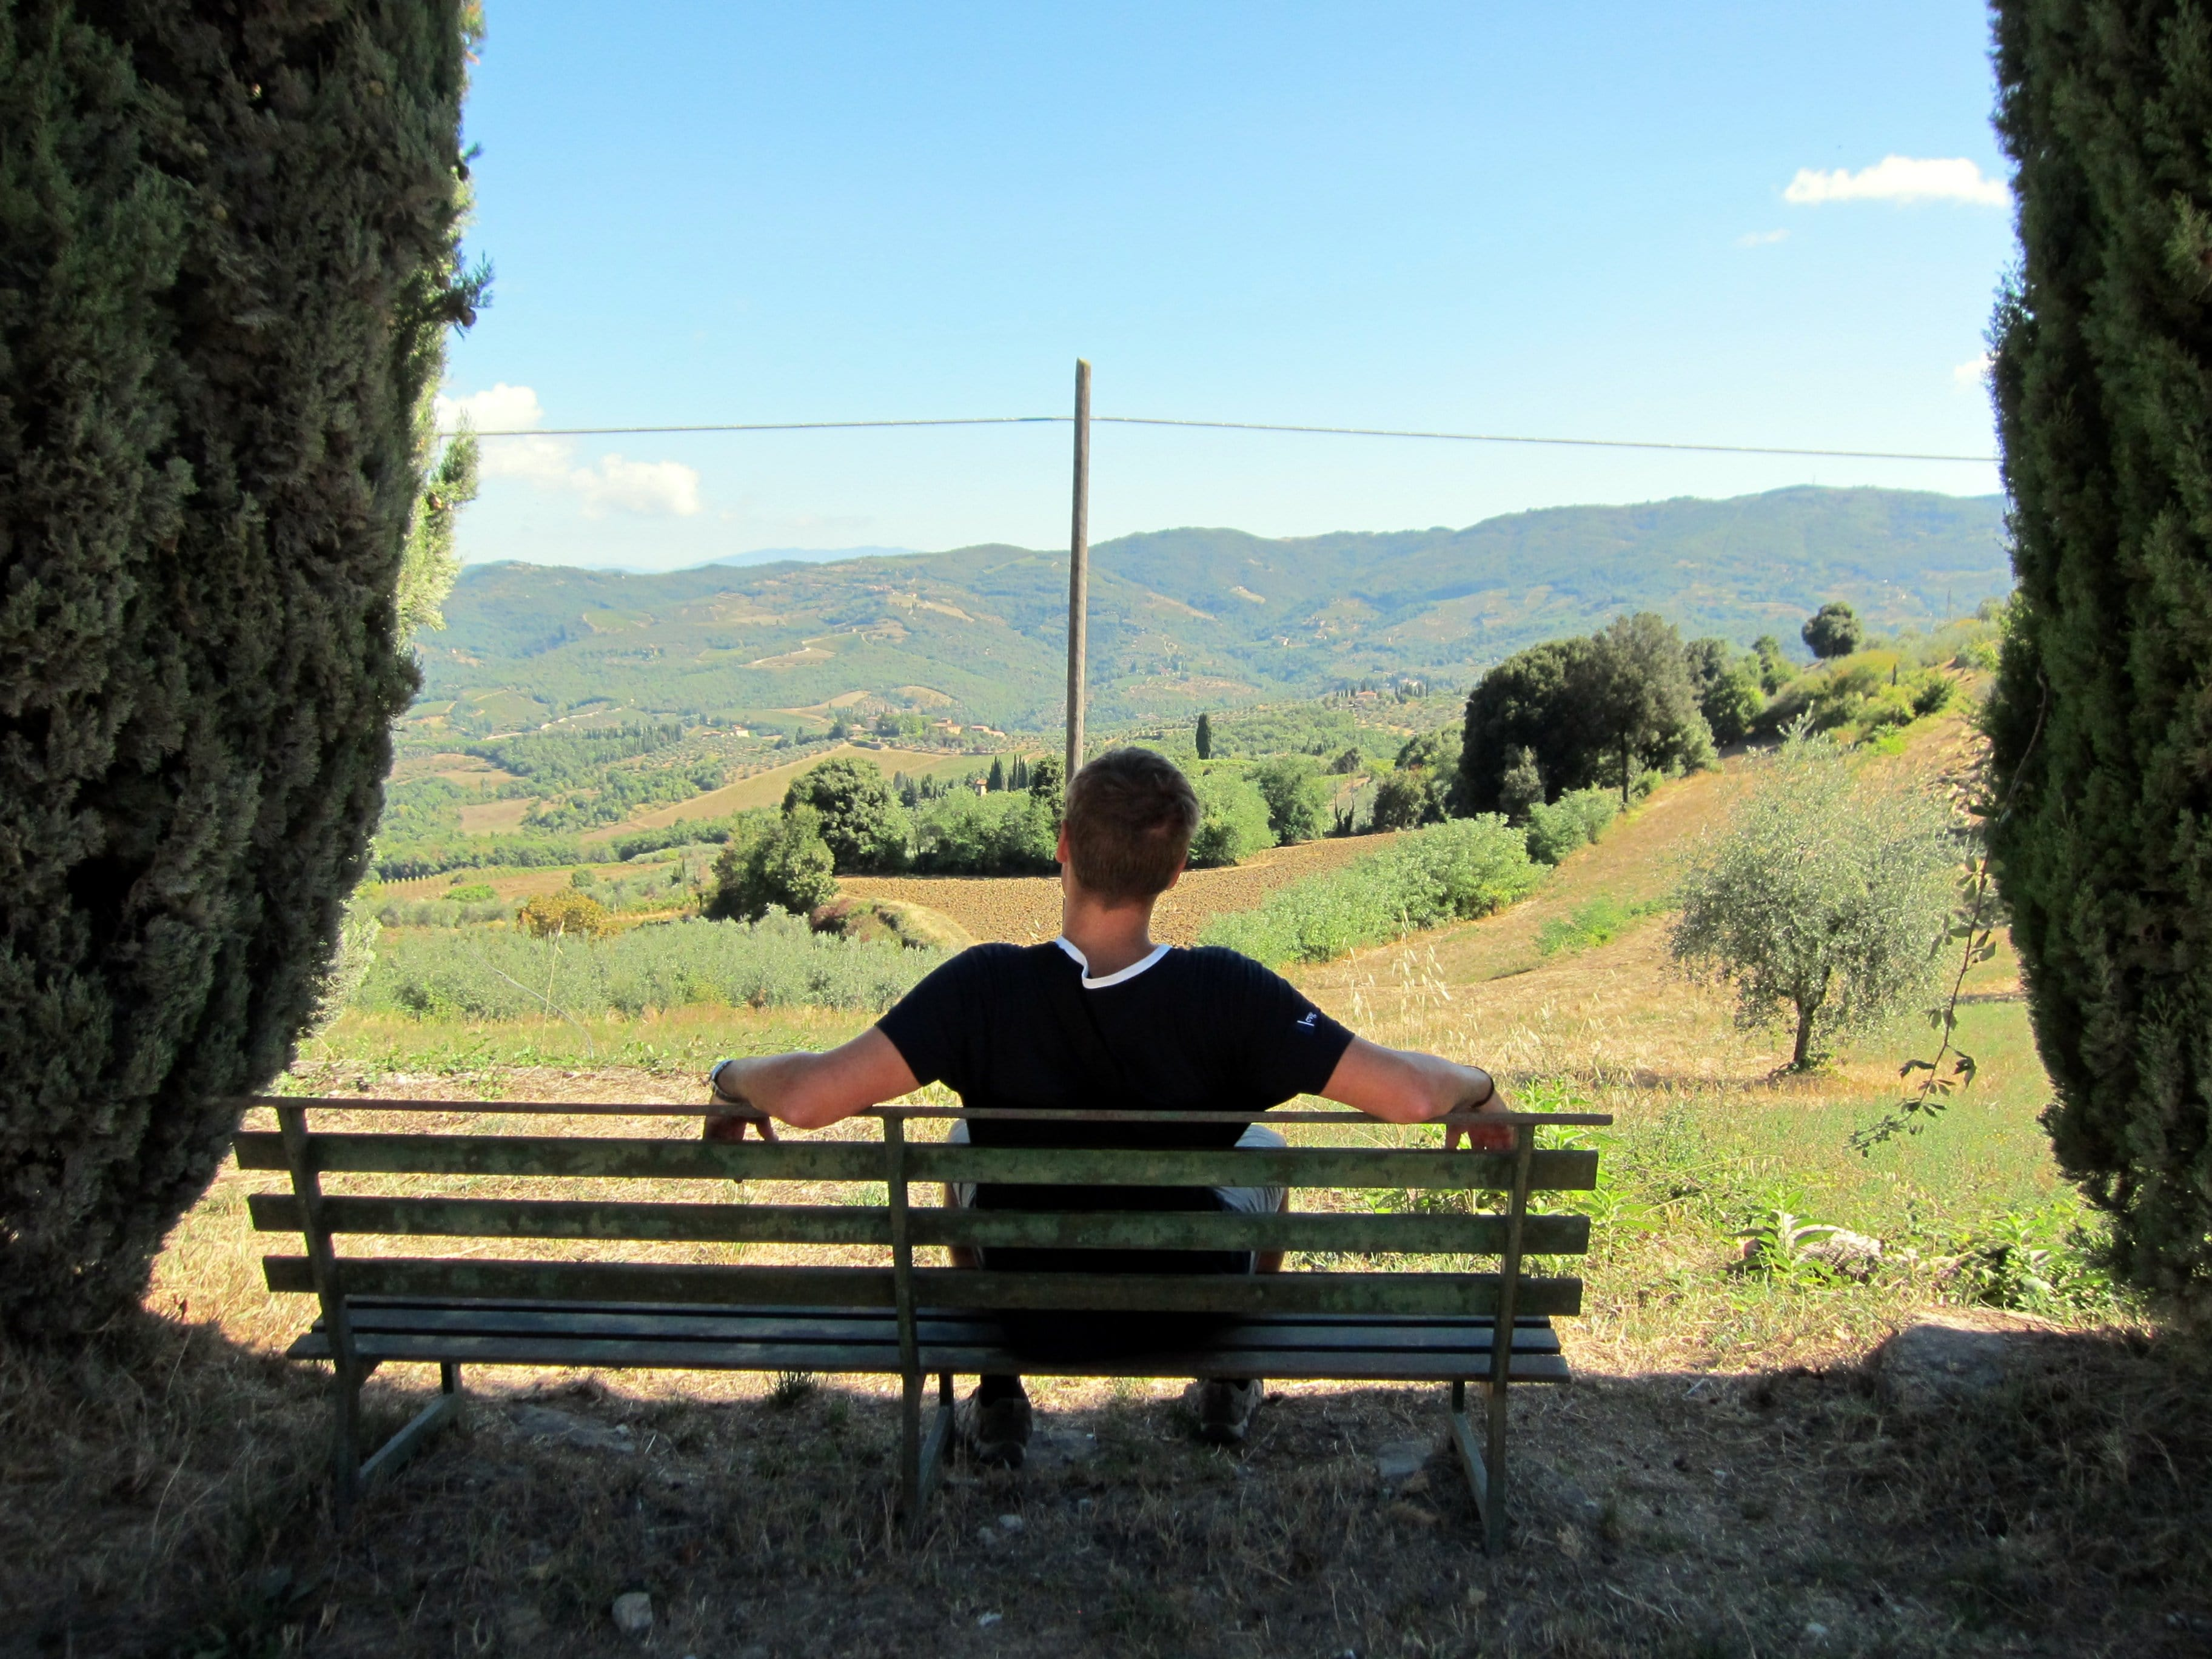 Where to stay in Italy for amazing wine? Obviously, Tuscany